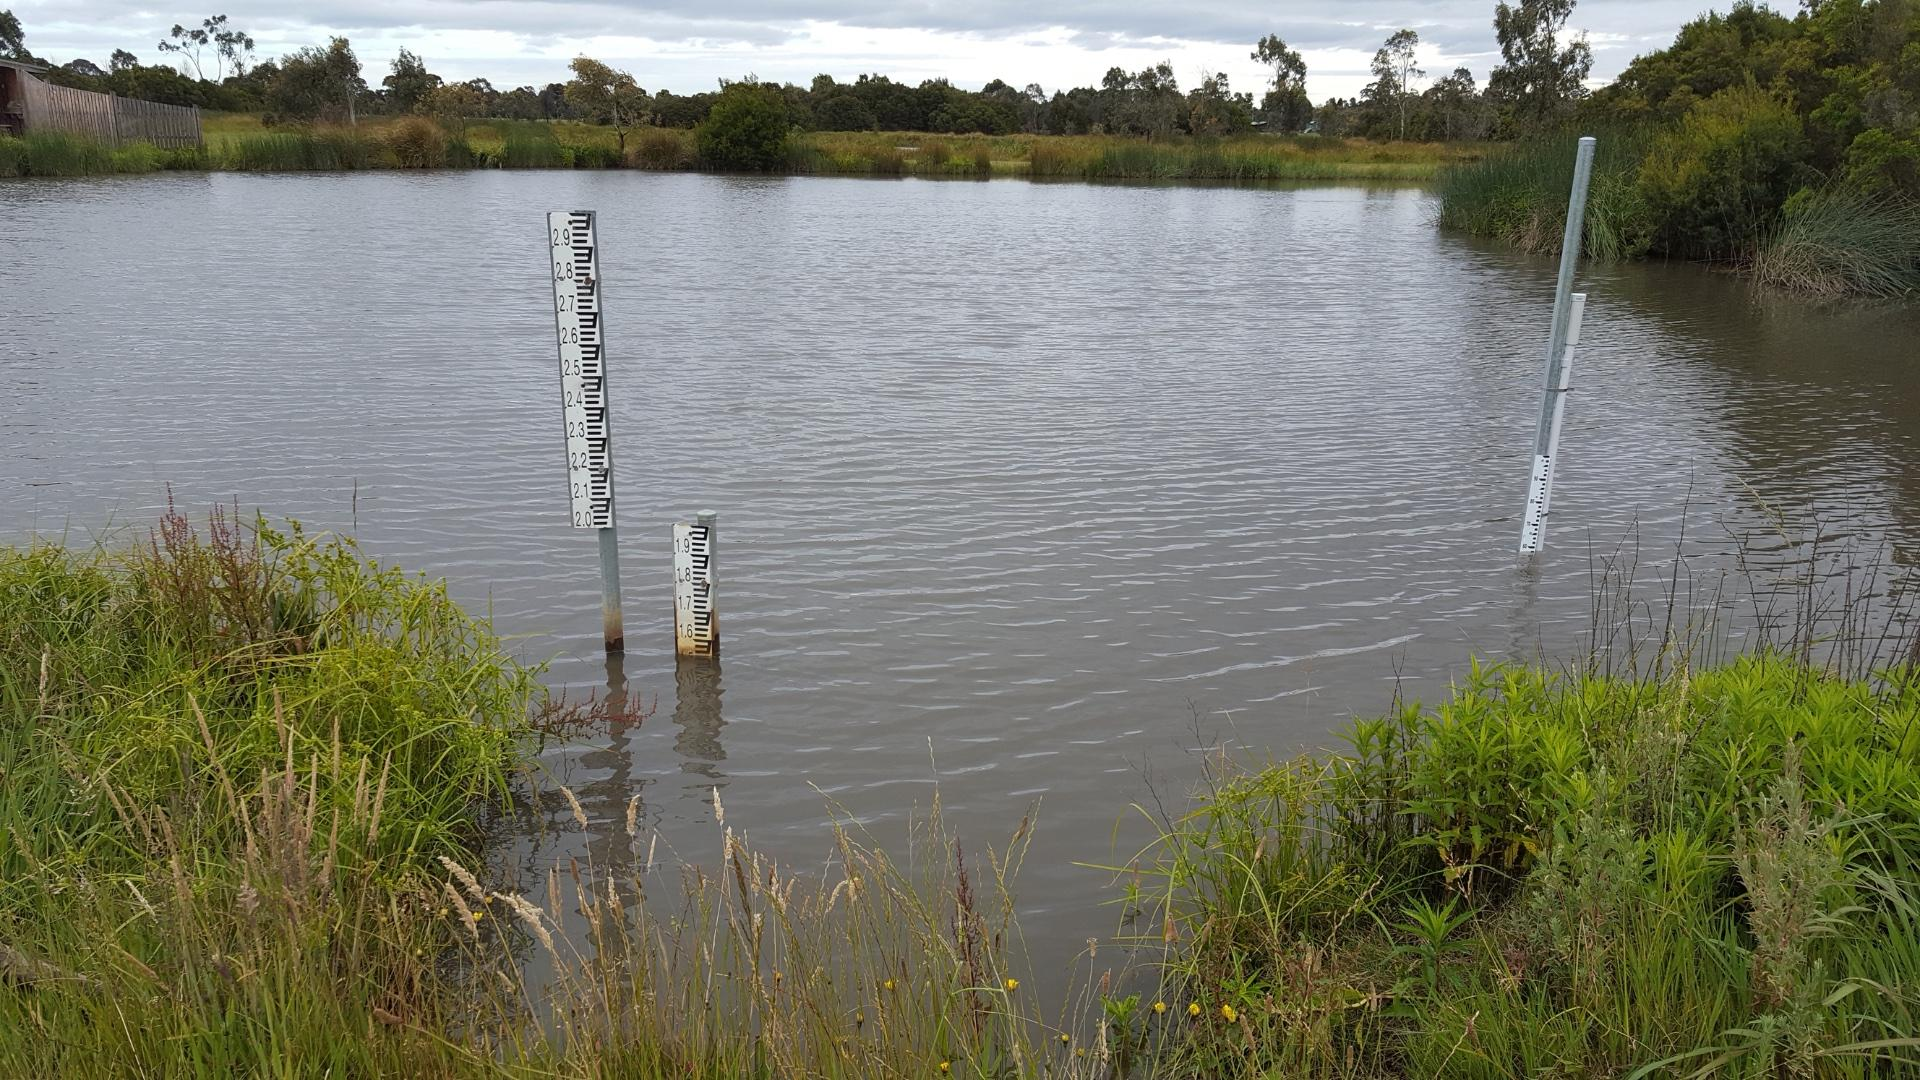 Old and new depth markers in the wetland - 1.55 on one, 58 on the other!